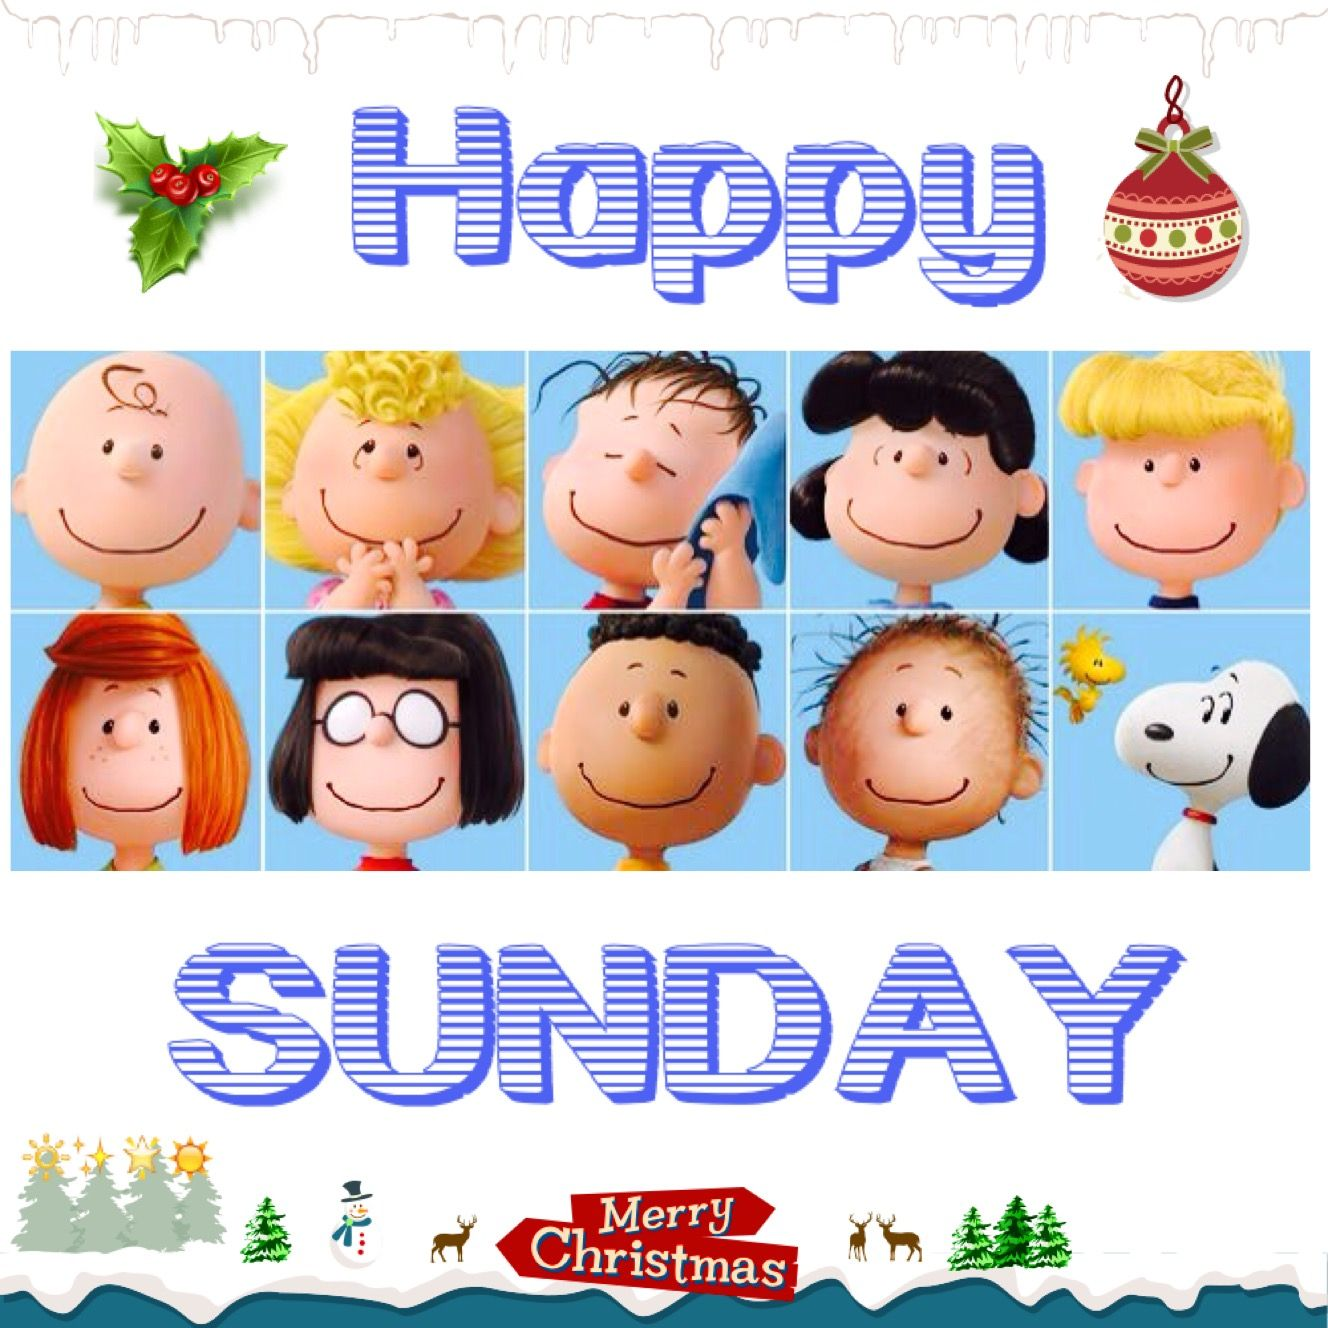 Pin by imke mause on peanuts pinterest snoopy peanuts gang and